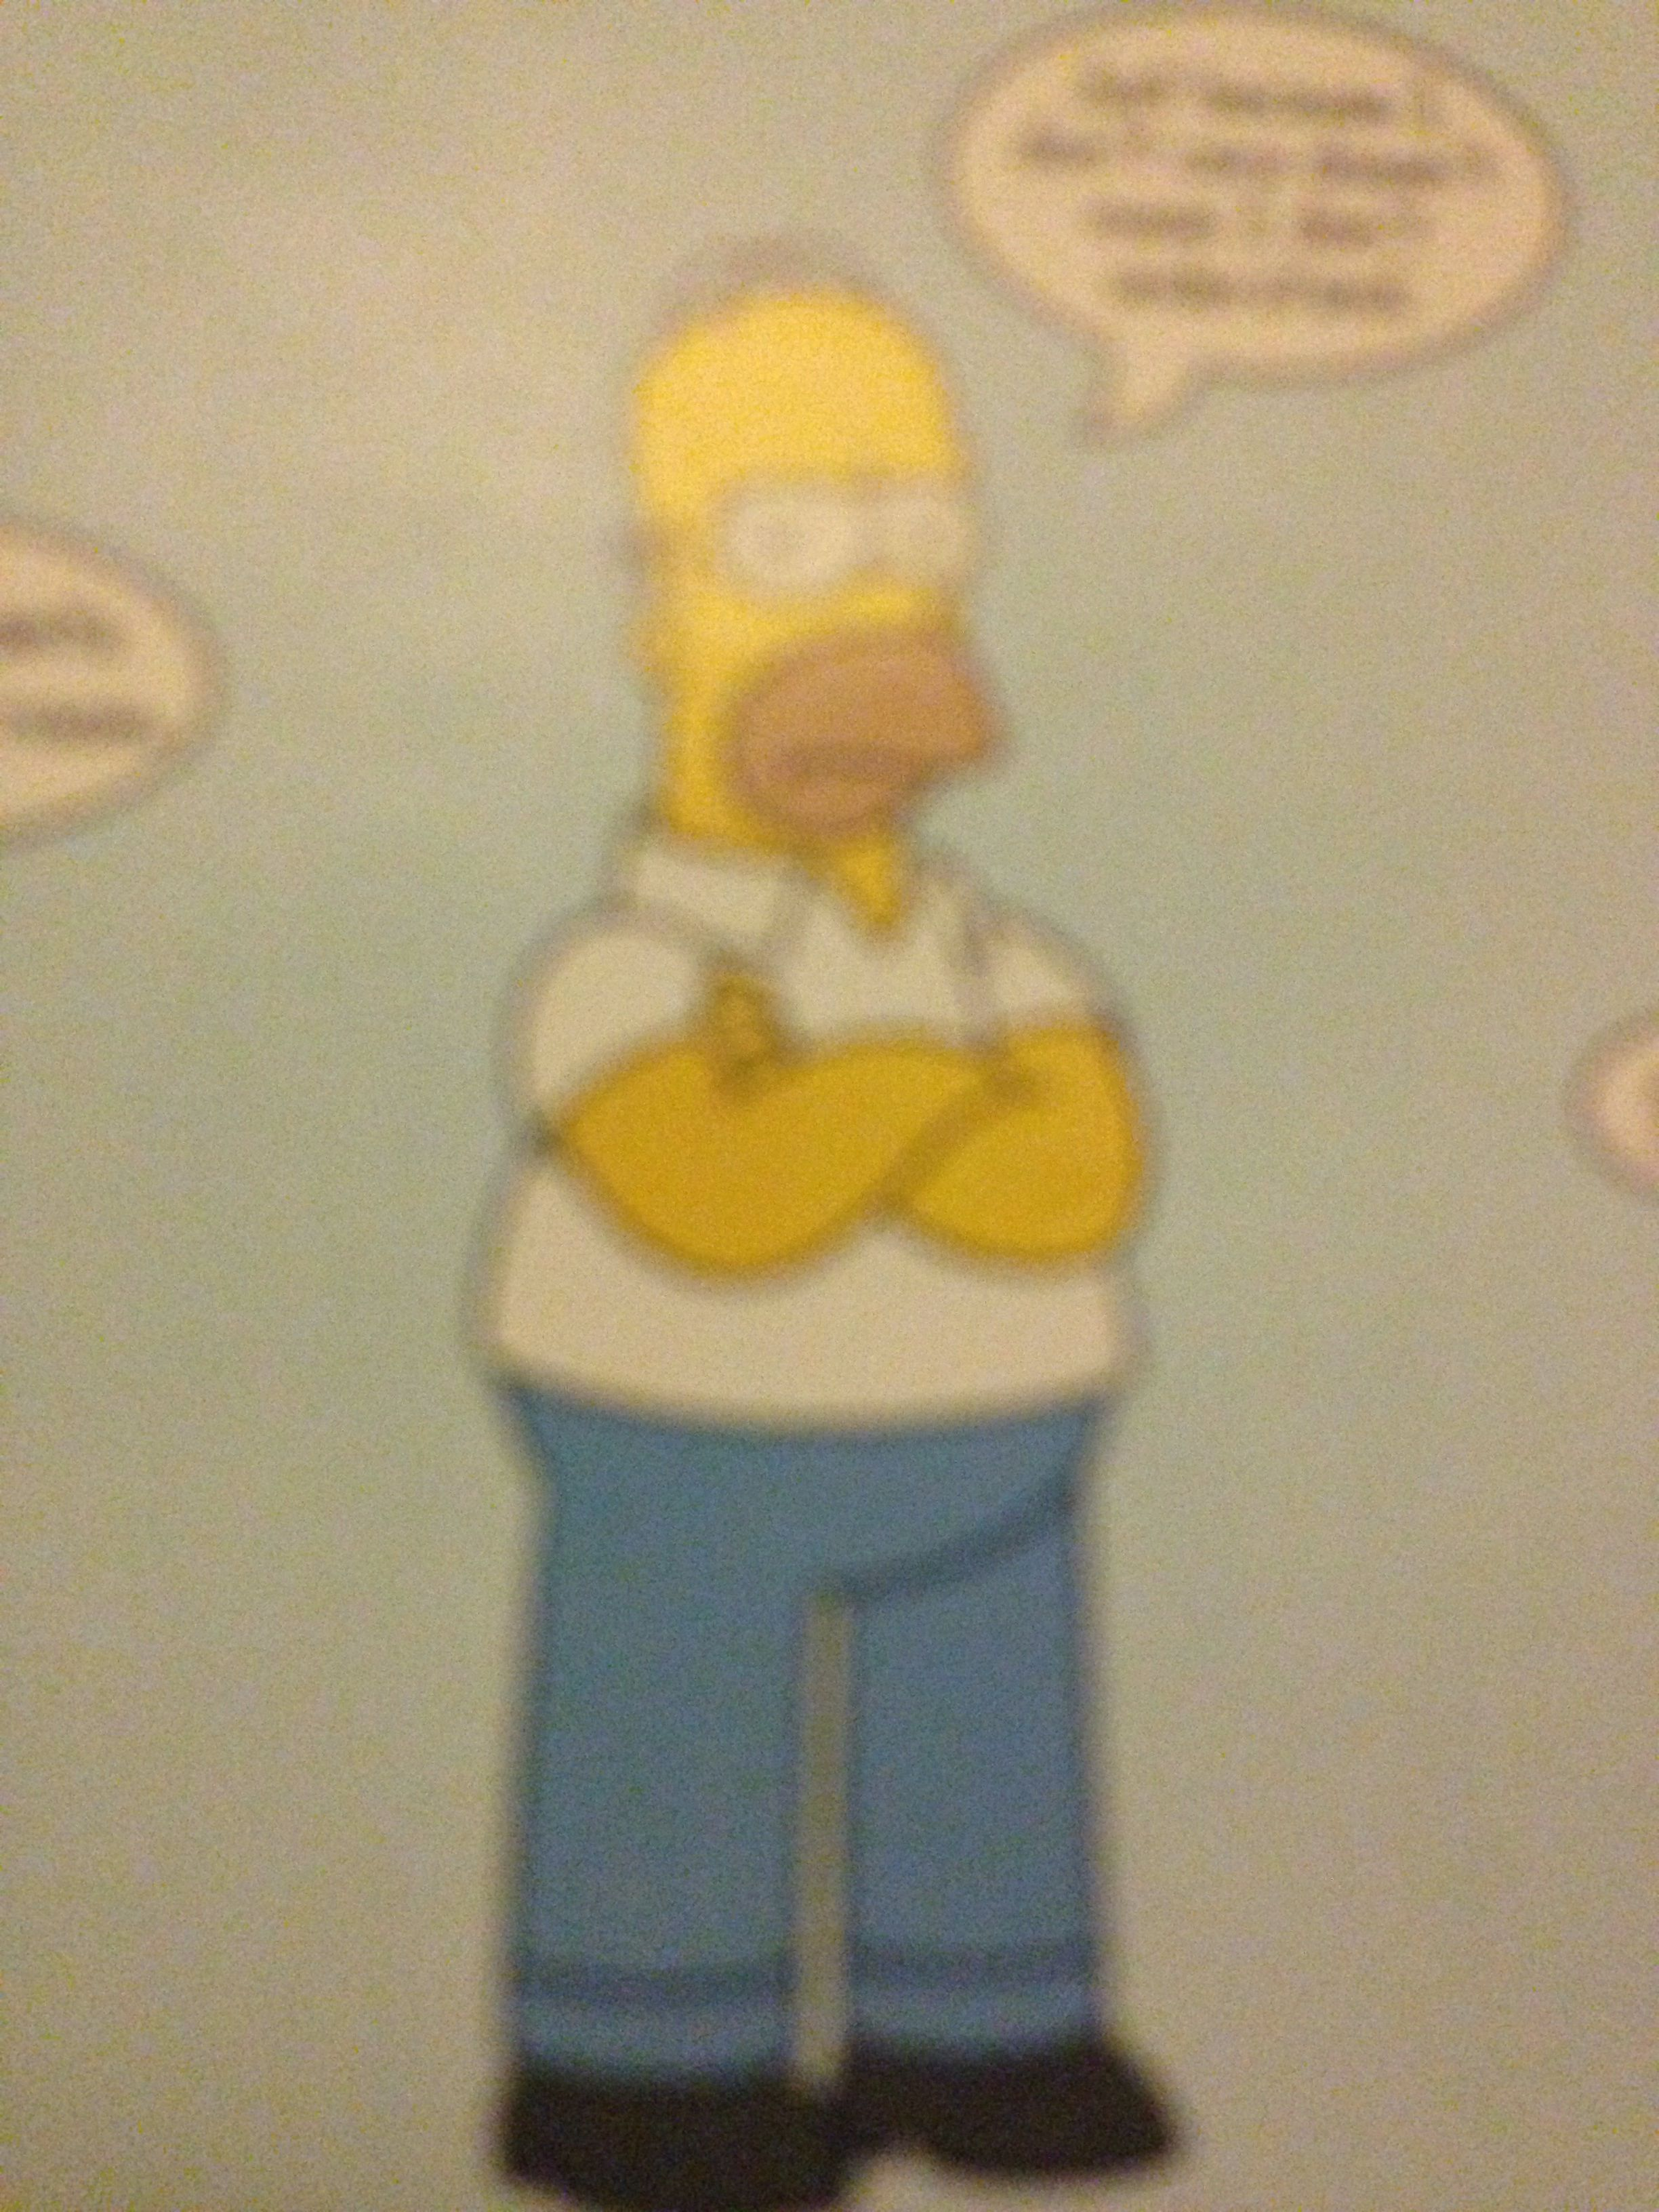 Homers favourite quote